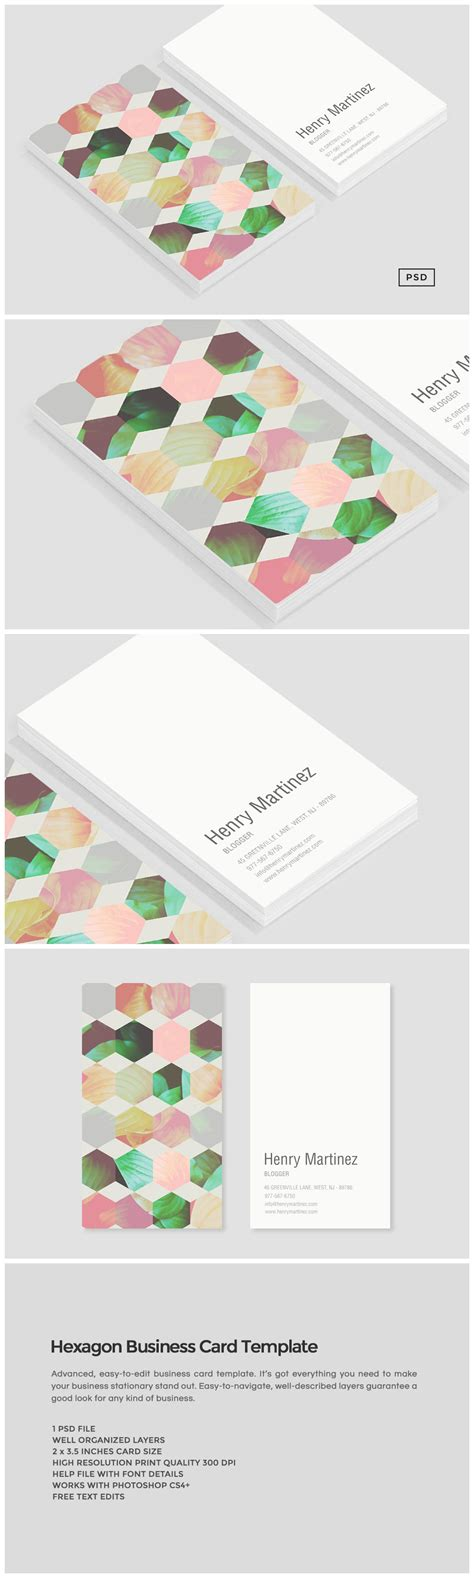 hexgonal card template hexagon business card template business card templates